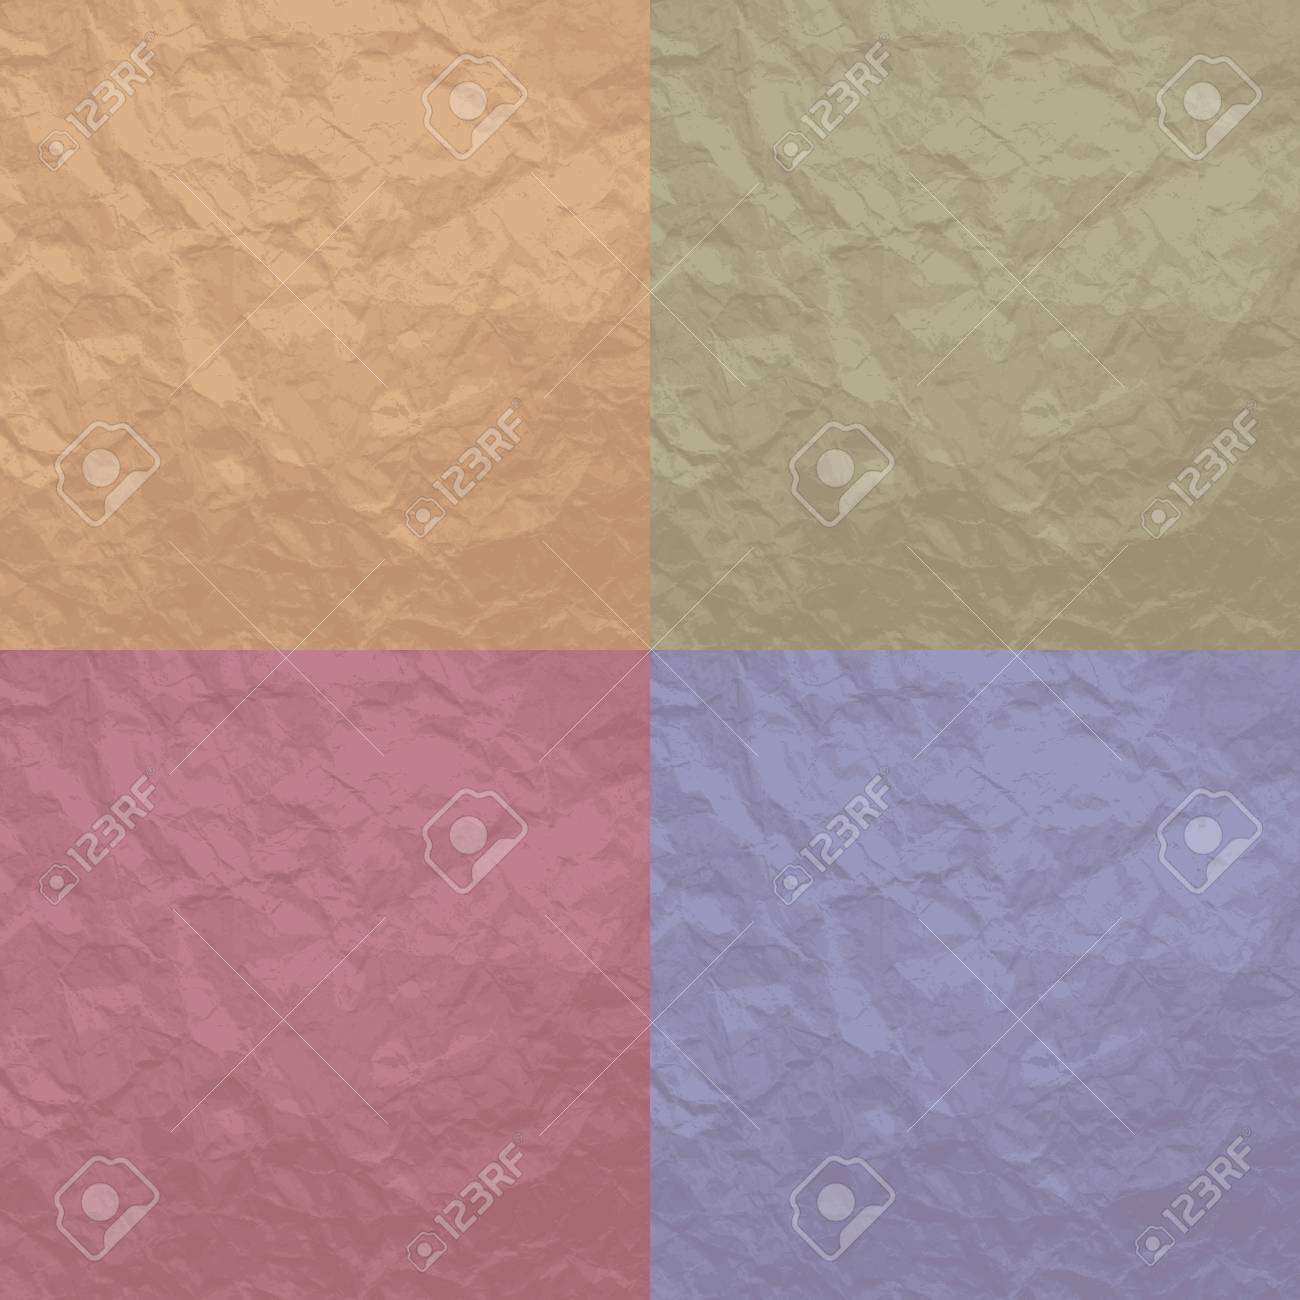 Set of 4 crumpled texture background for design Stock Vector - 16062396